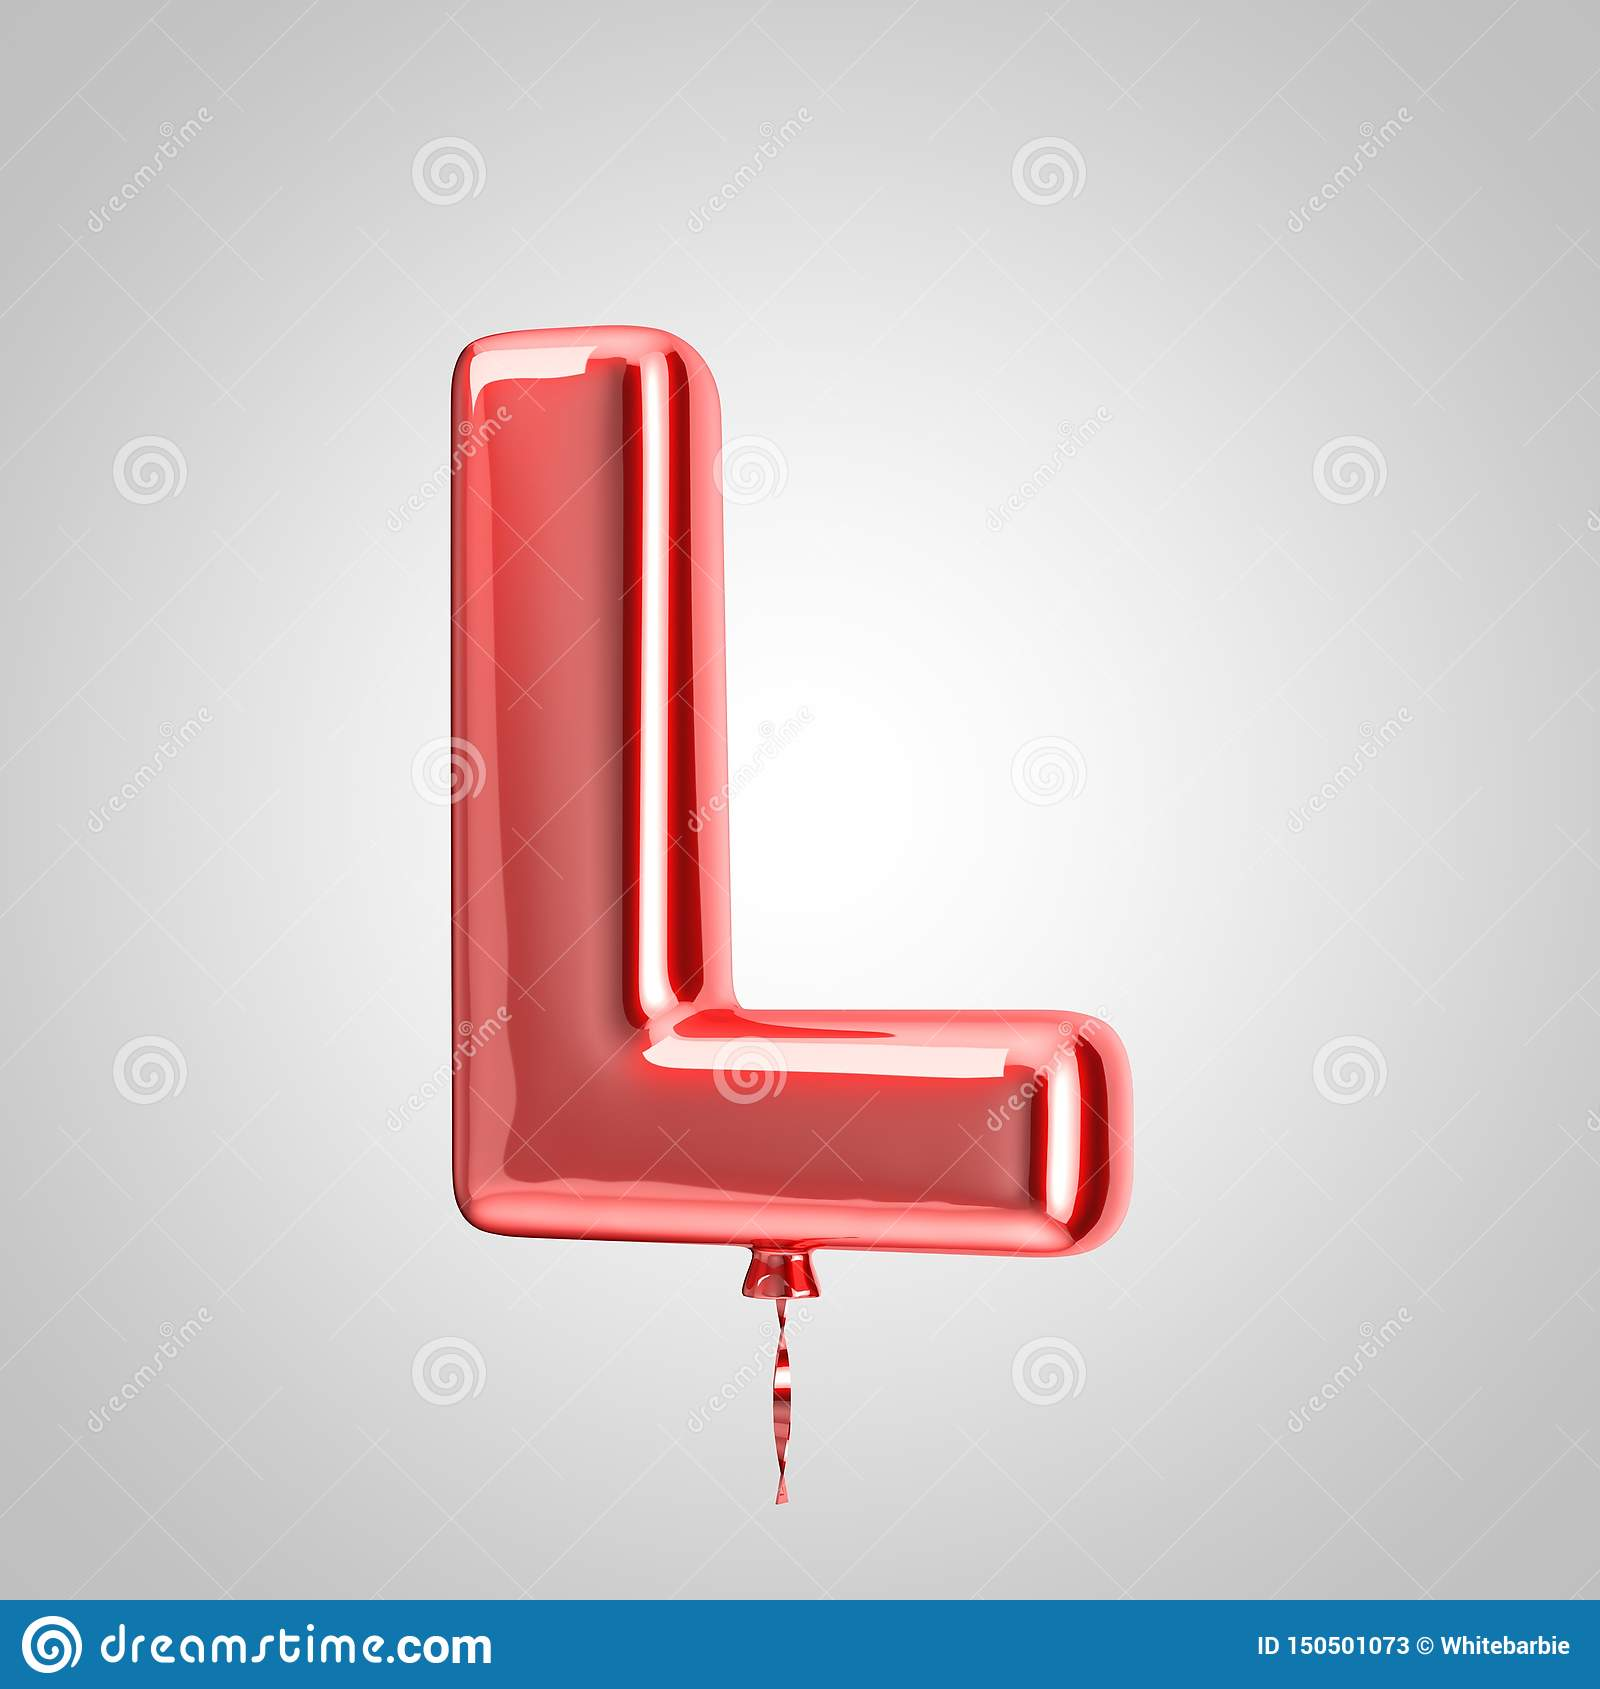 Shiny Metallic Red Balloon Letter L Uppercase Isolated On